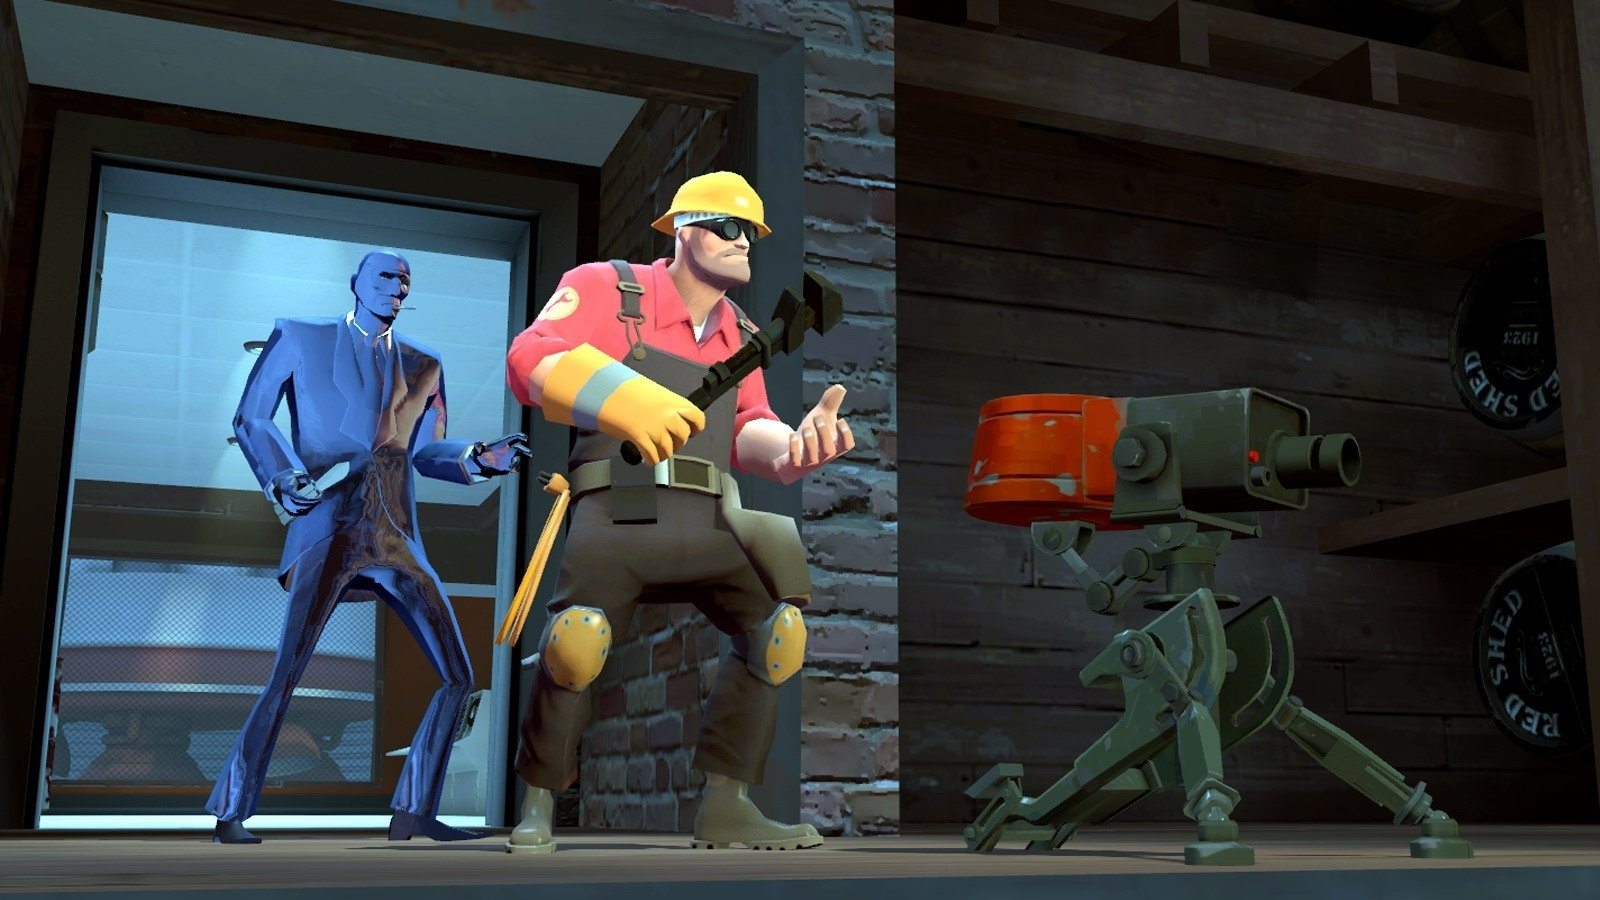 Computerspiele - Team Fortress 2  Spy (Team Fortress) Engineer (Team Fortress) Wallpaper